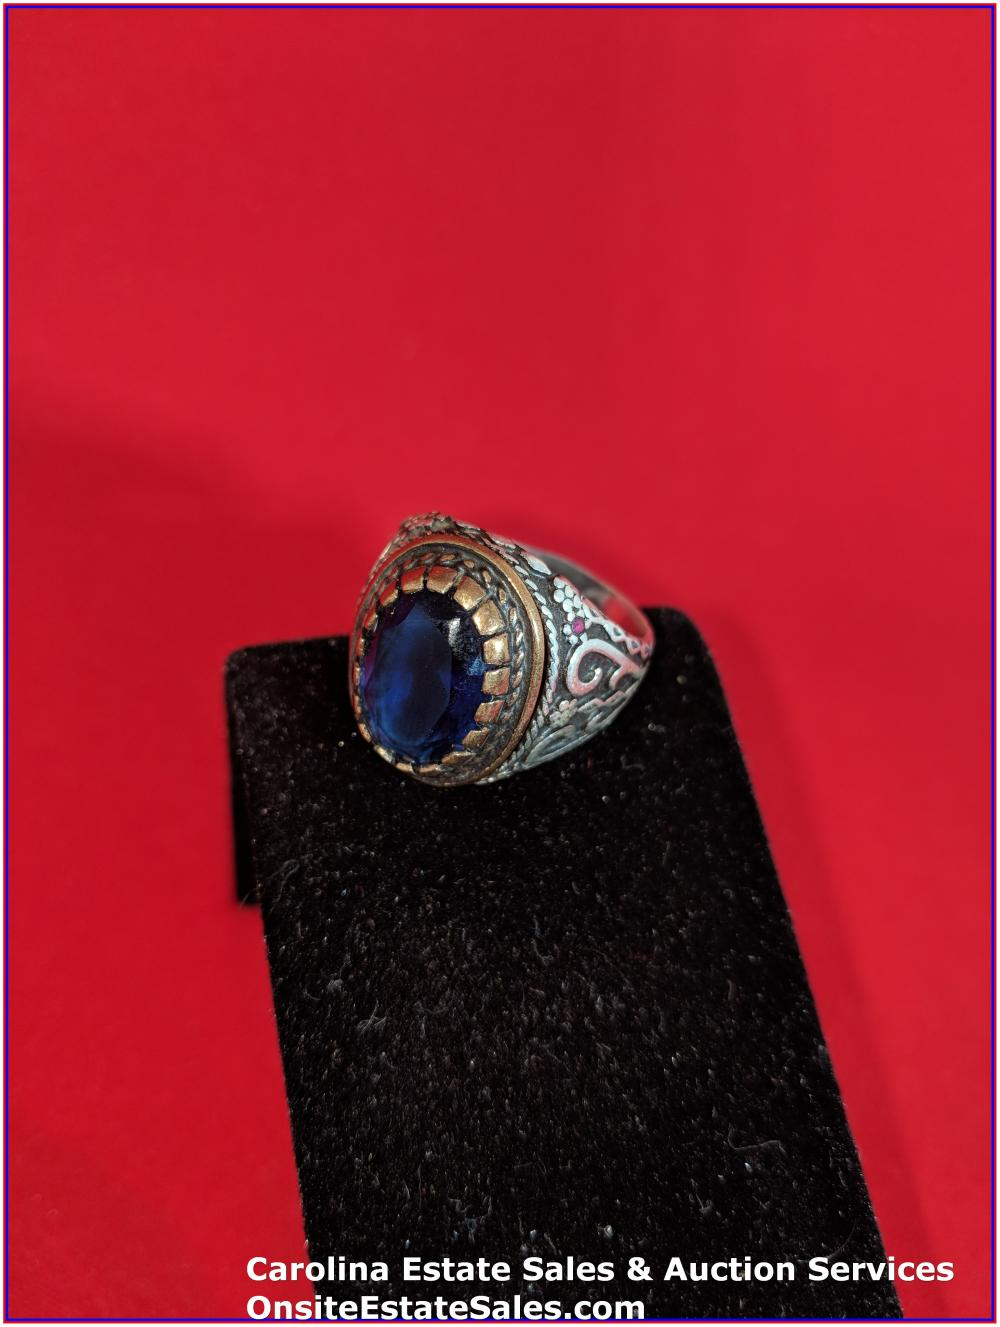 925 Gem Ring Sterling 12 Grams Total Weight Includes Stone